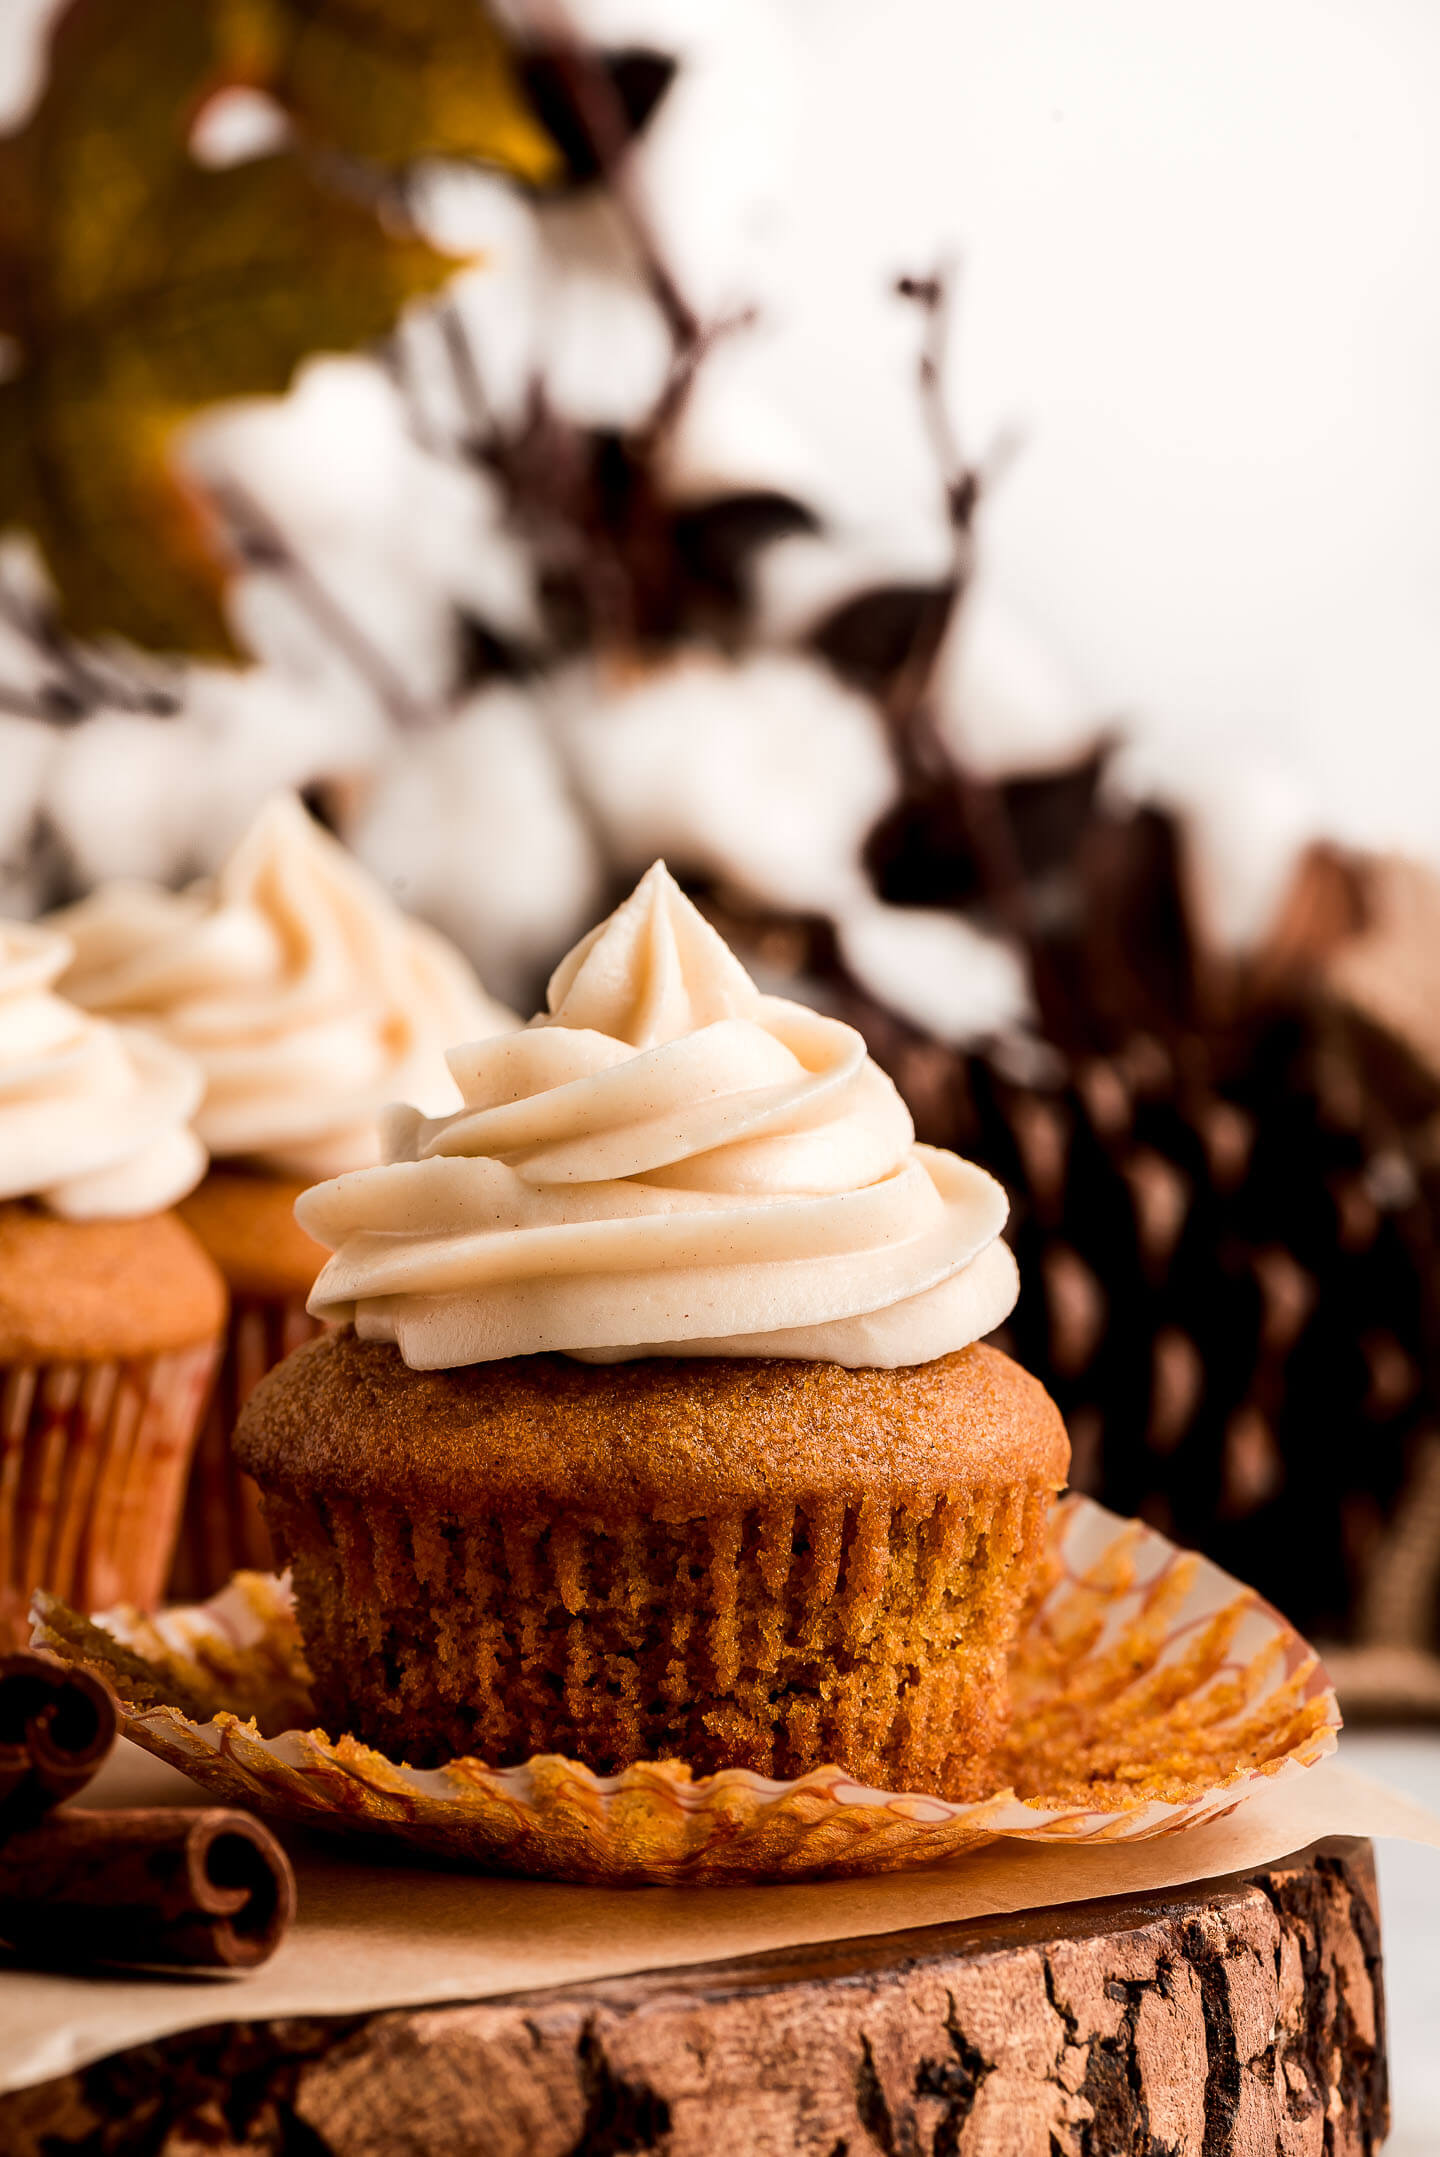 A Pumpkin Cupcake topped with cinnamon Cream Cheese Frosting with the wrapper peeled down.